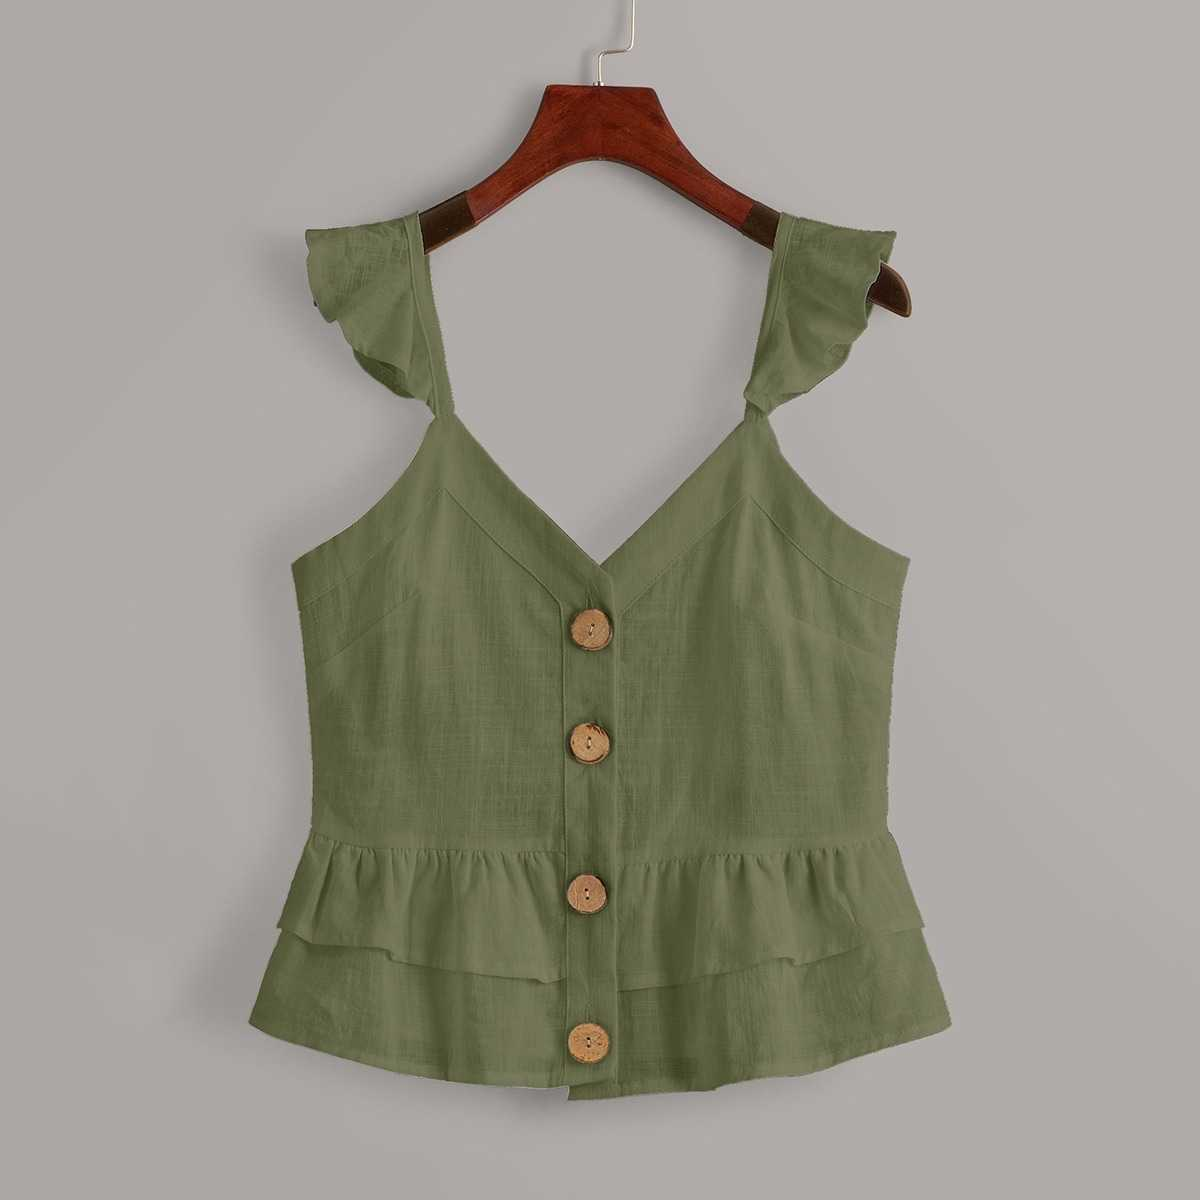 Button Front Ruffle Hem Cami Top in Army Green by ROMWE on GOOFASH